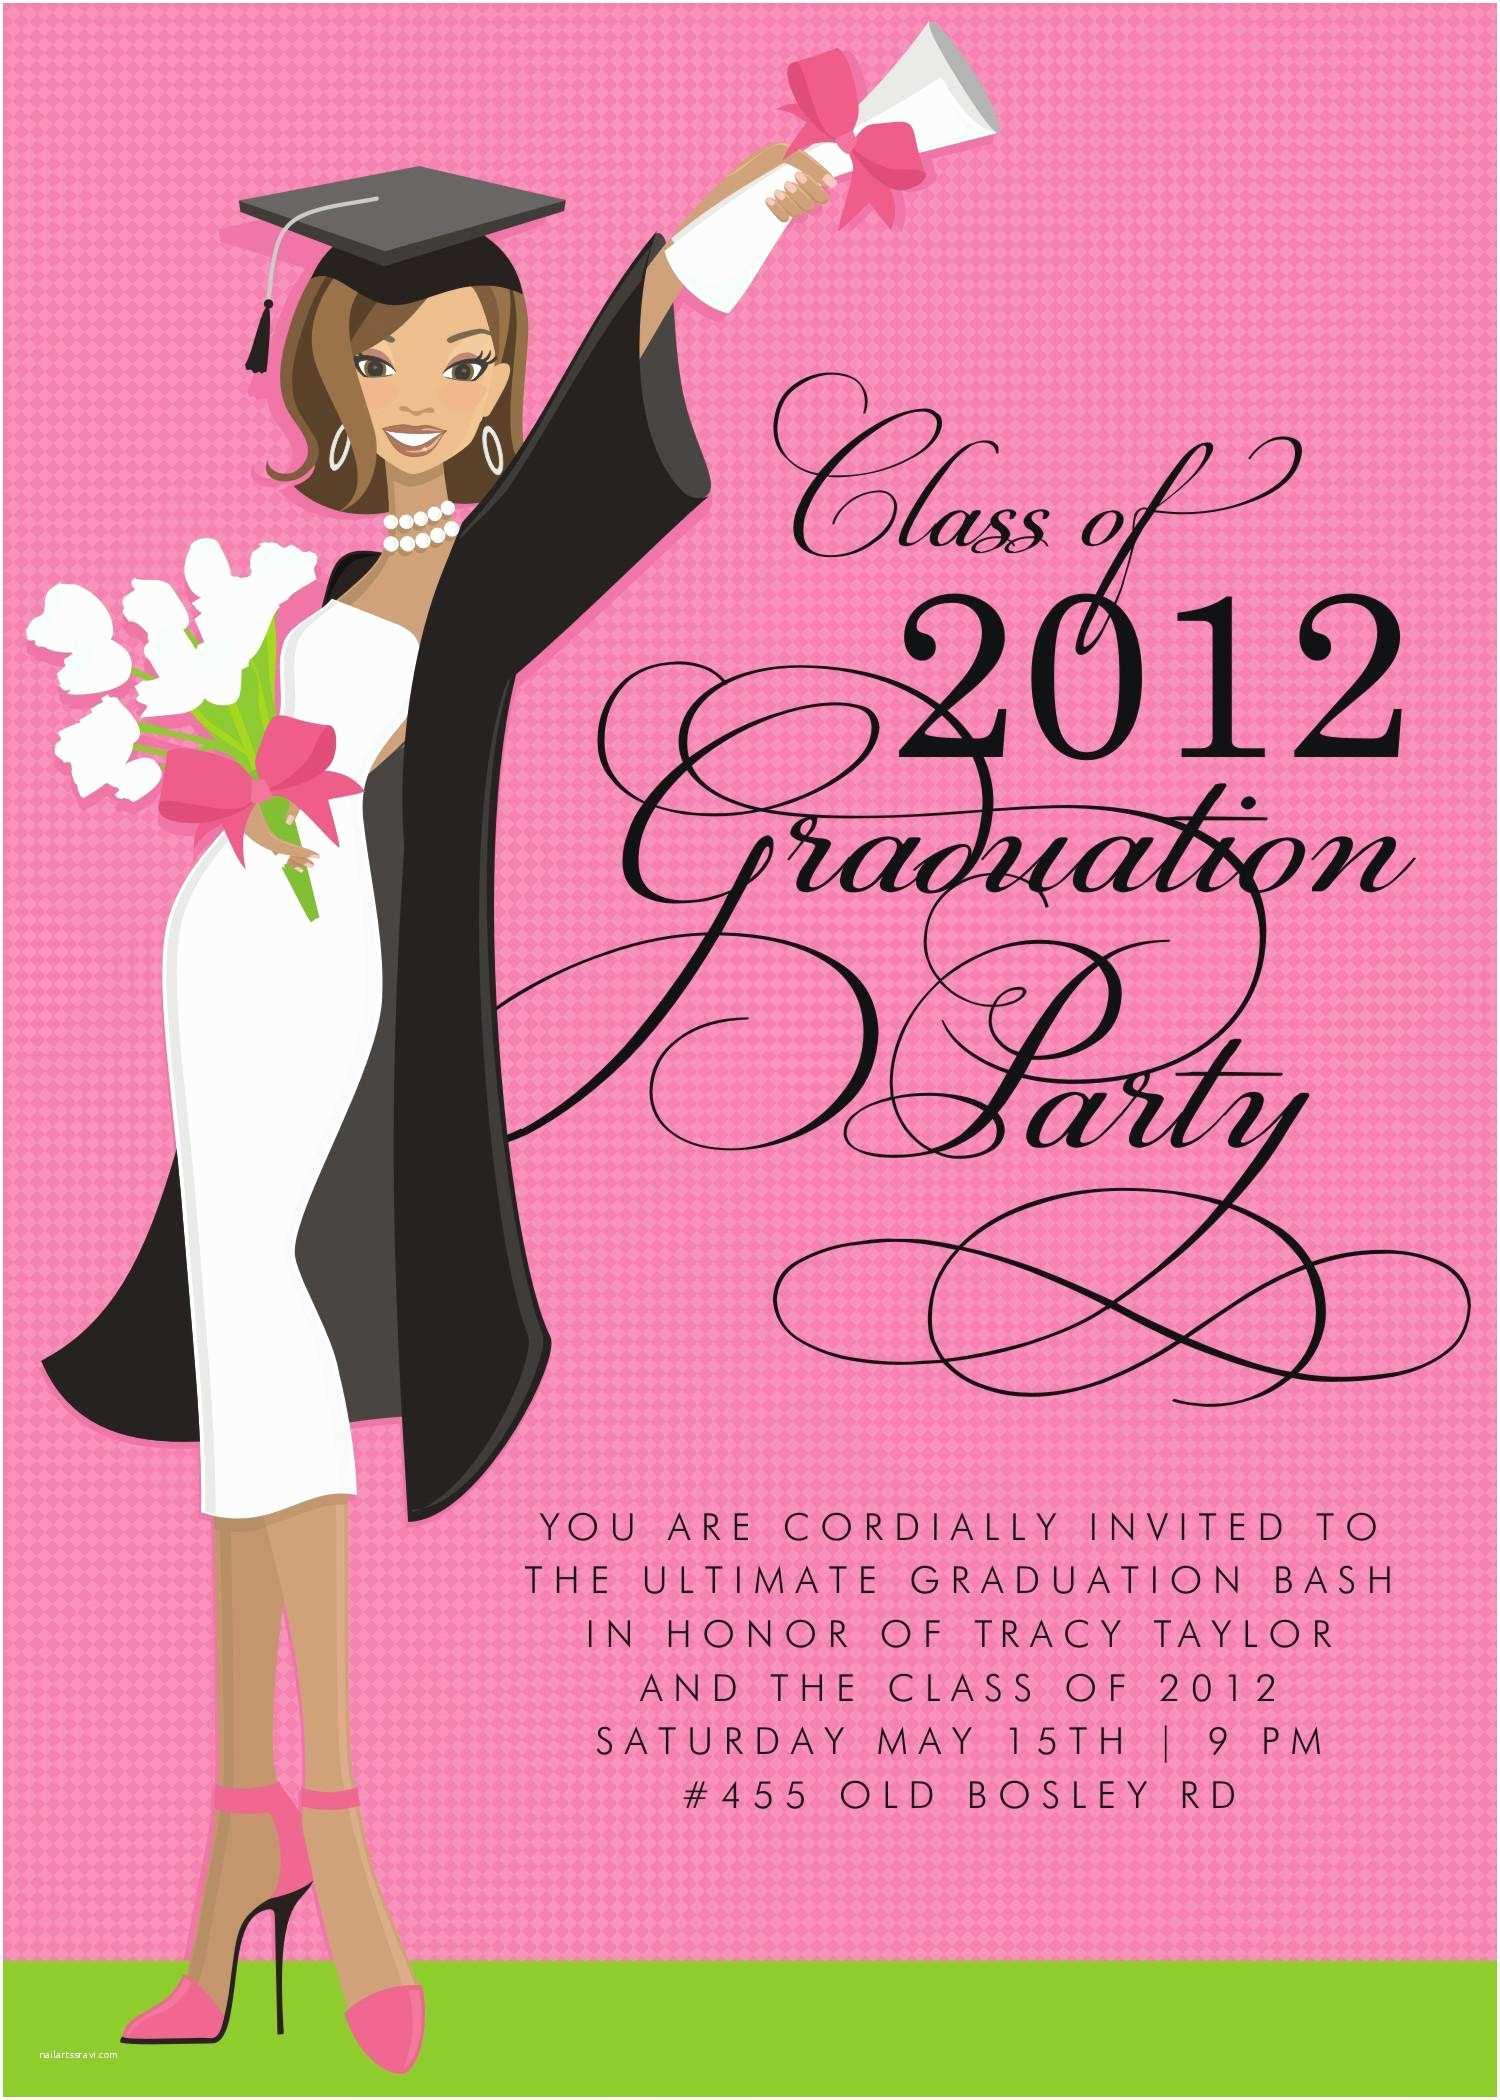 Graduation Party Invitation Wording Graduation Invitations Graduation Invitations Wording